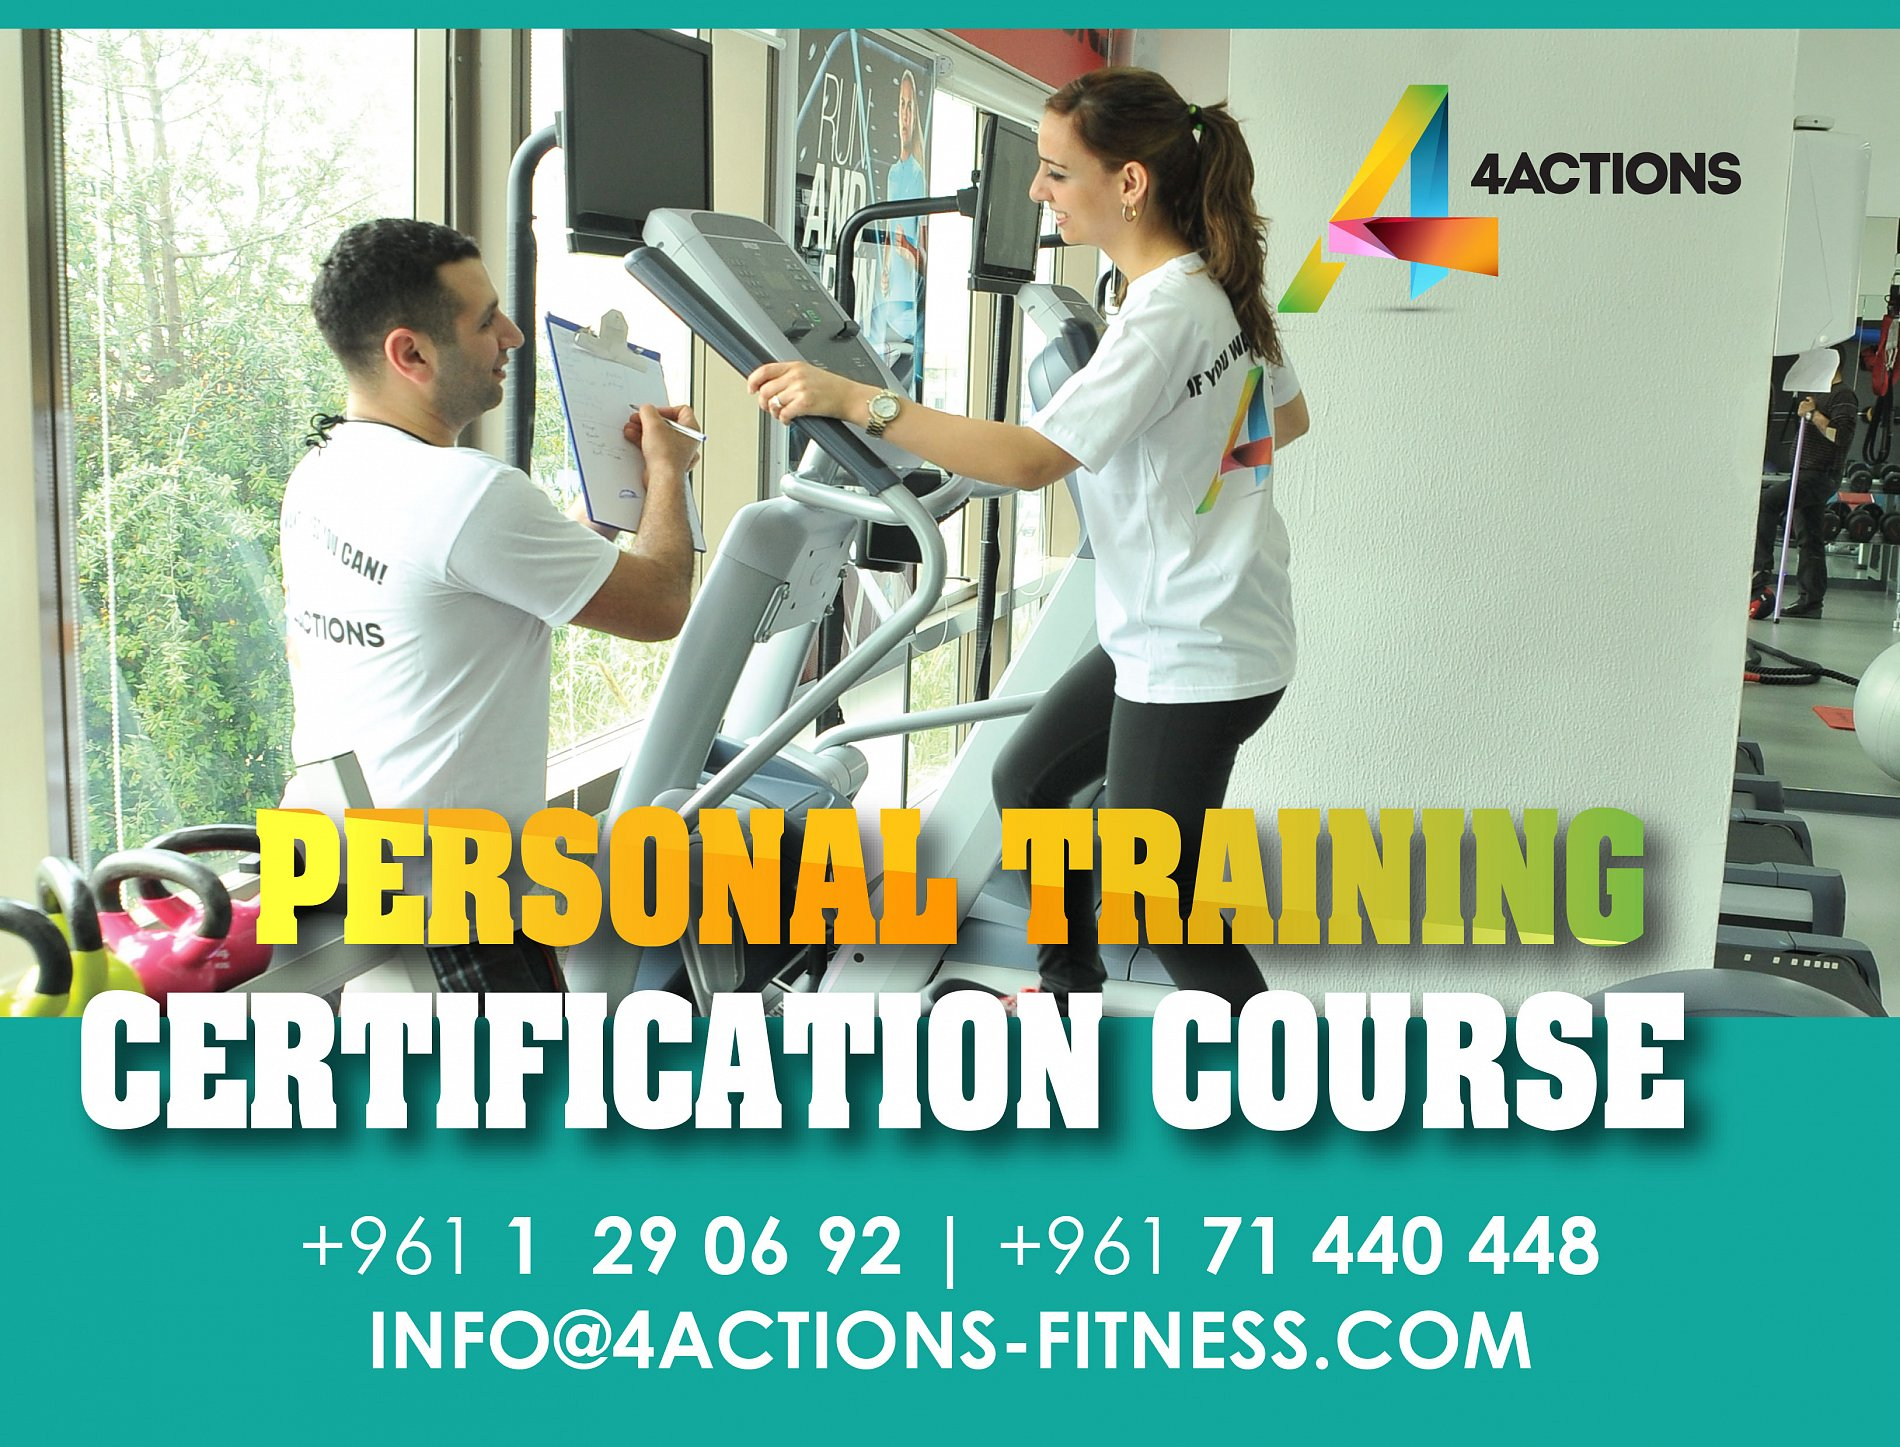 Ifpa Personal Training Course Certification By 4 Actions Academy